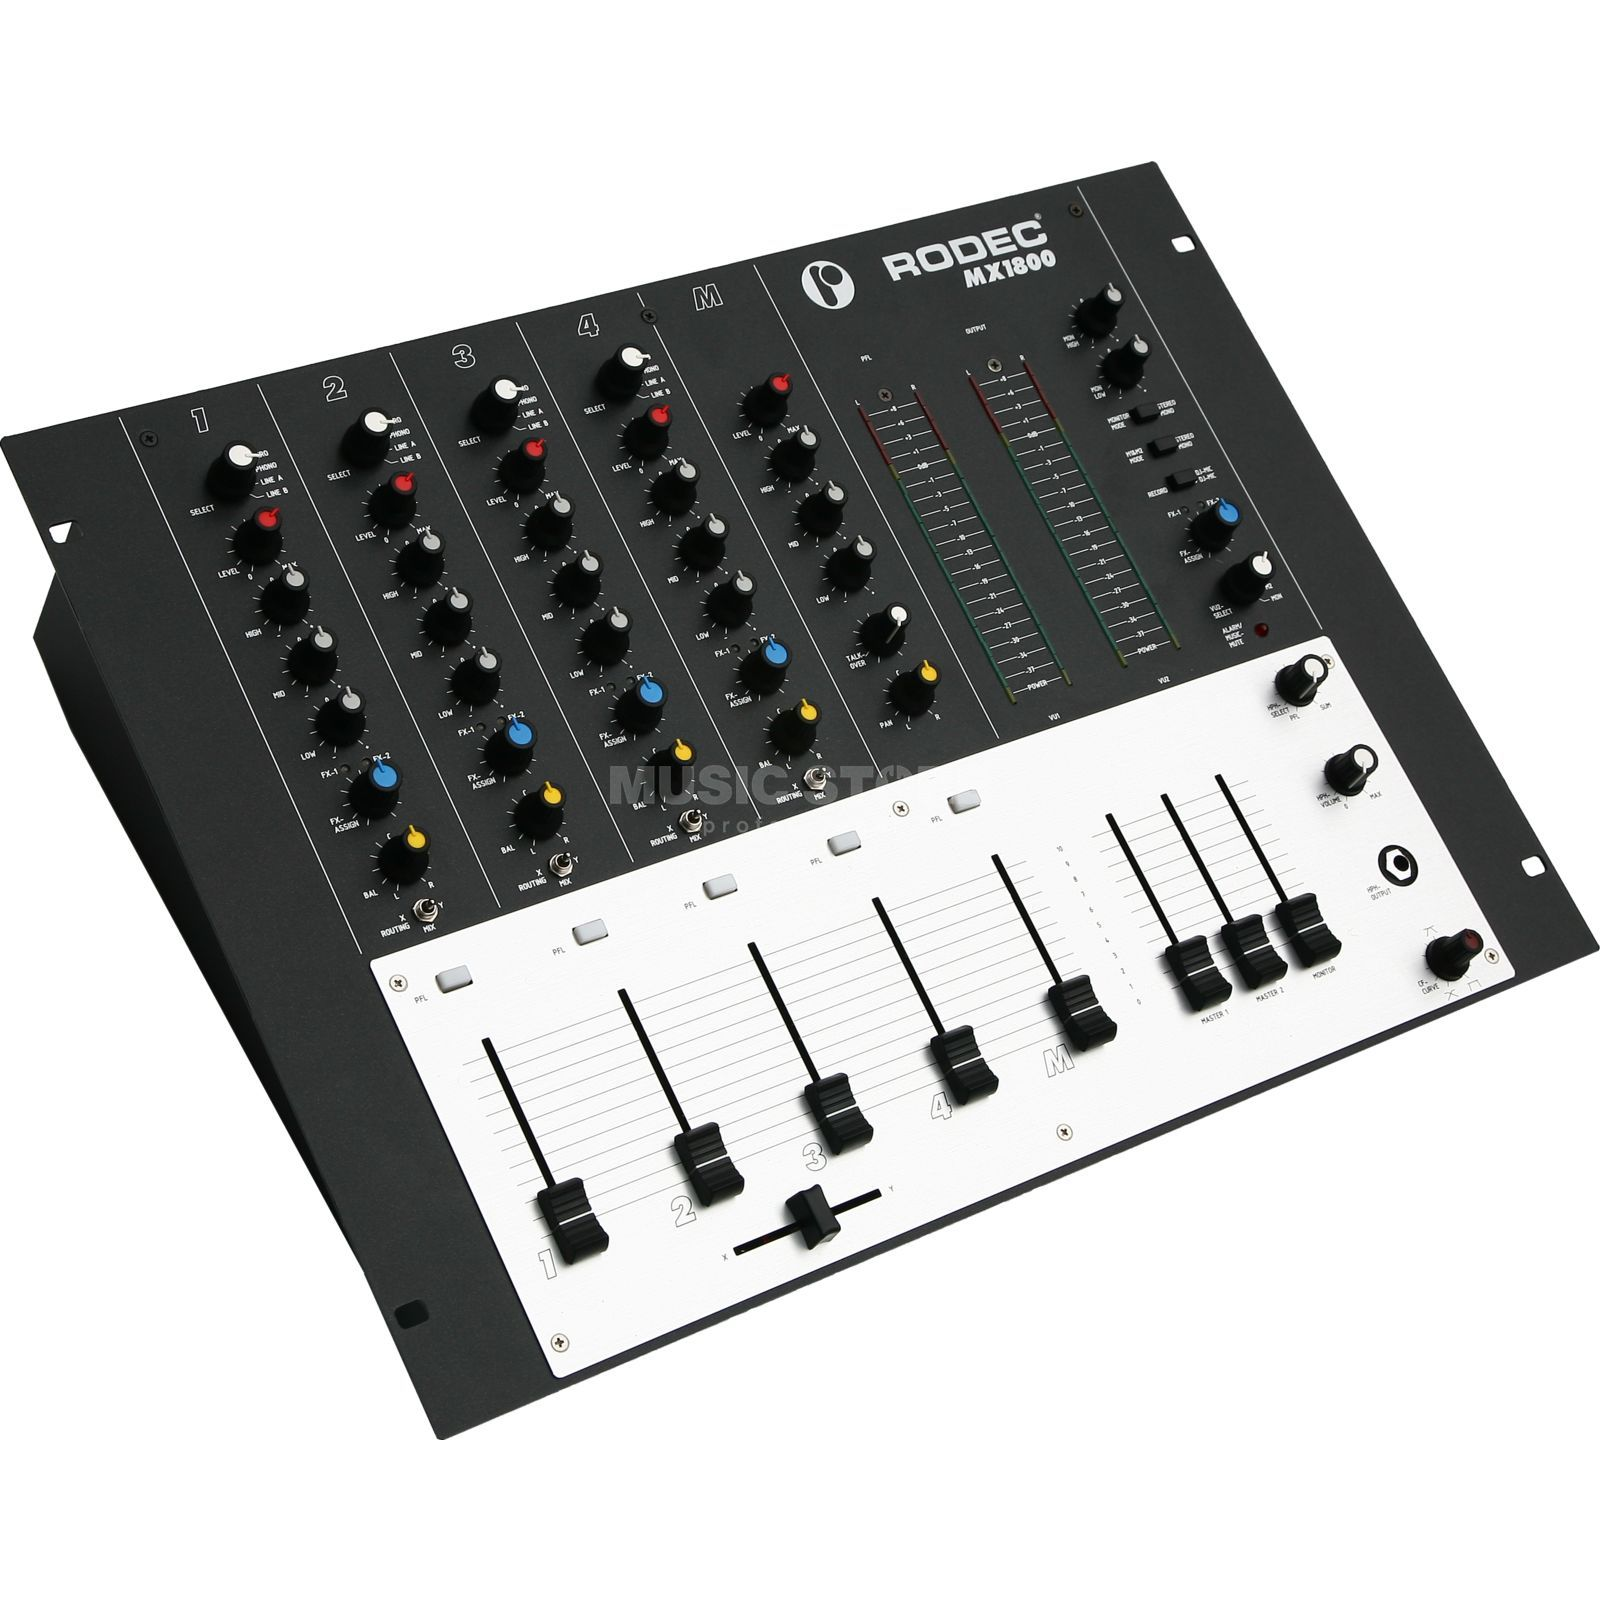 "Rodec MX1800 USB 5-Channel Audio Mixer, 19"" Product Image"